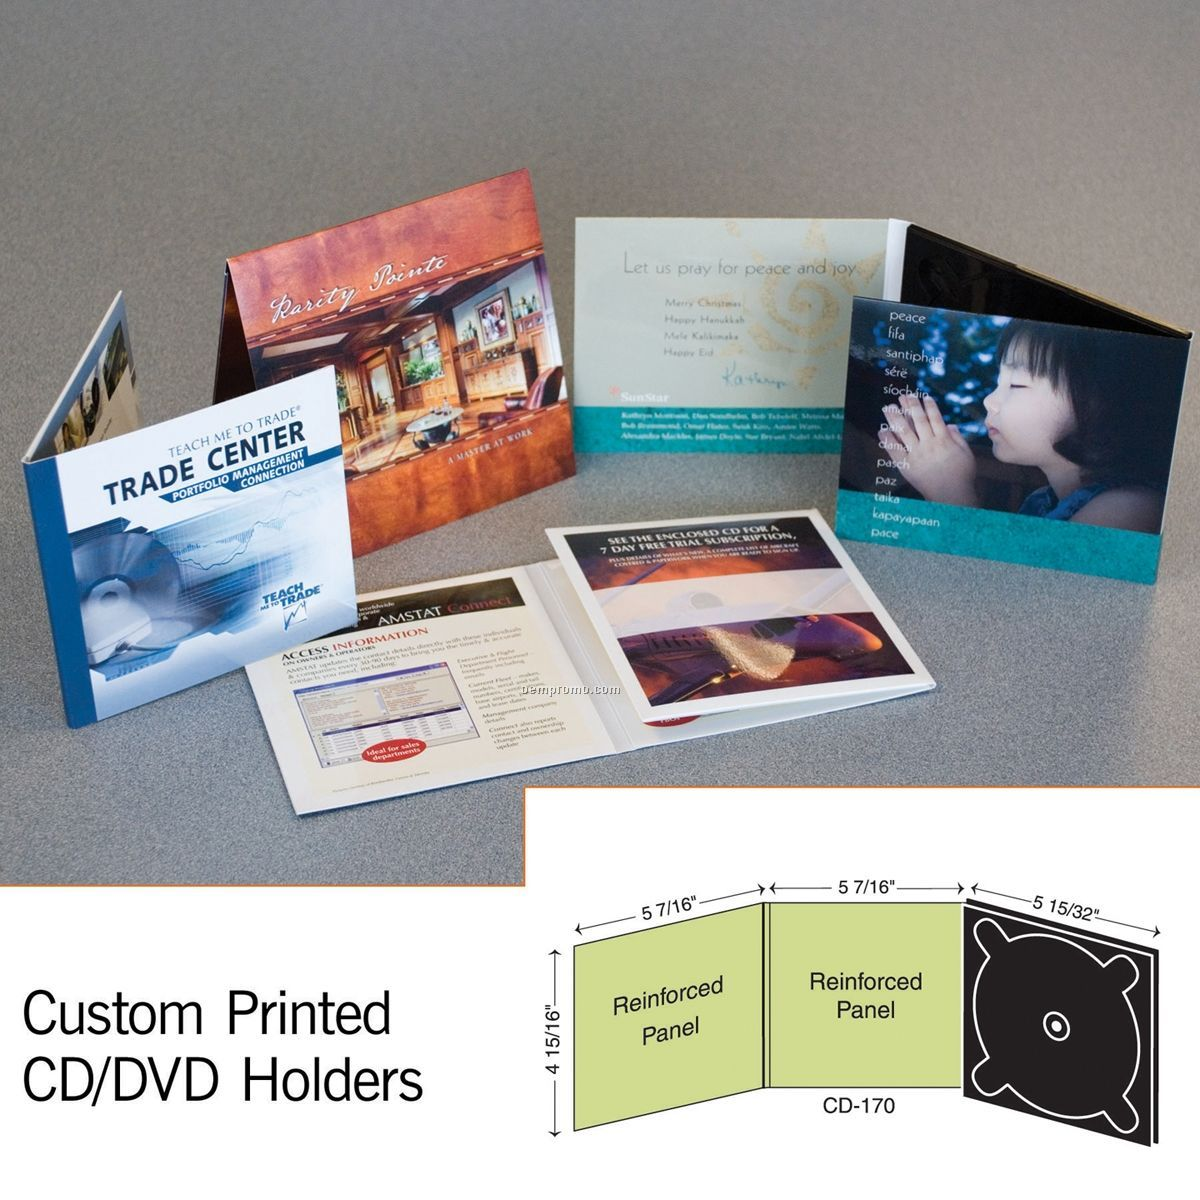 3 Panel CD Holder W/ 1 Right Panel Digitray (1 Color/1 Side)